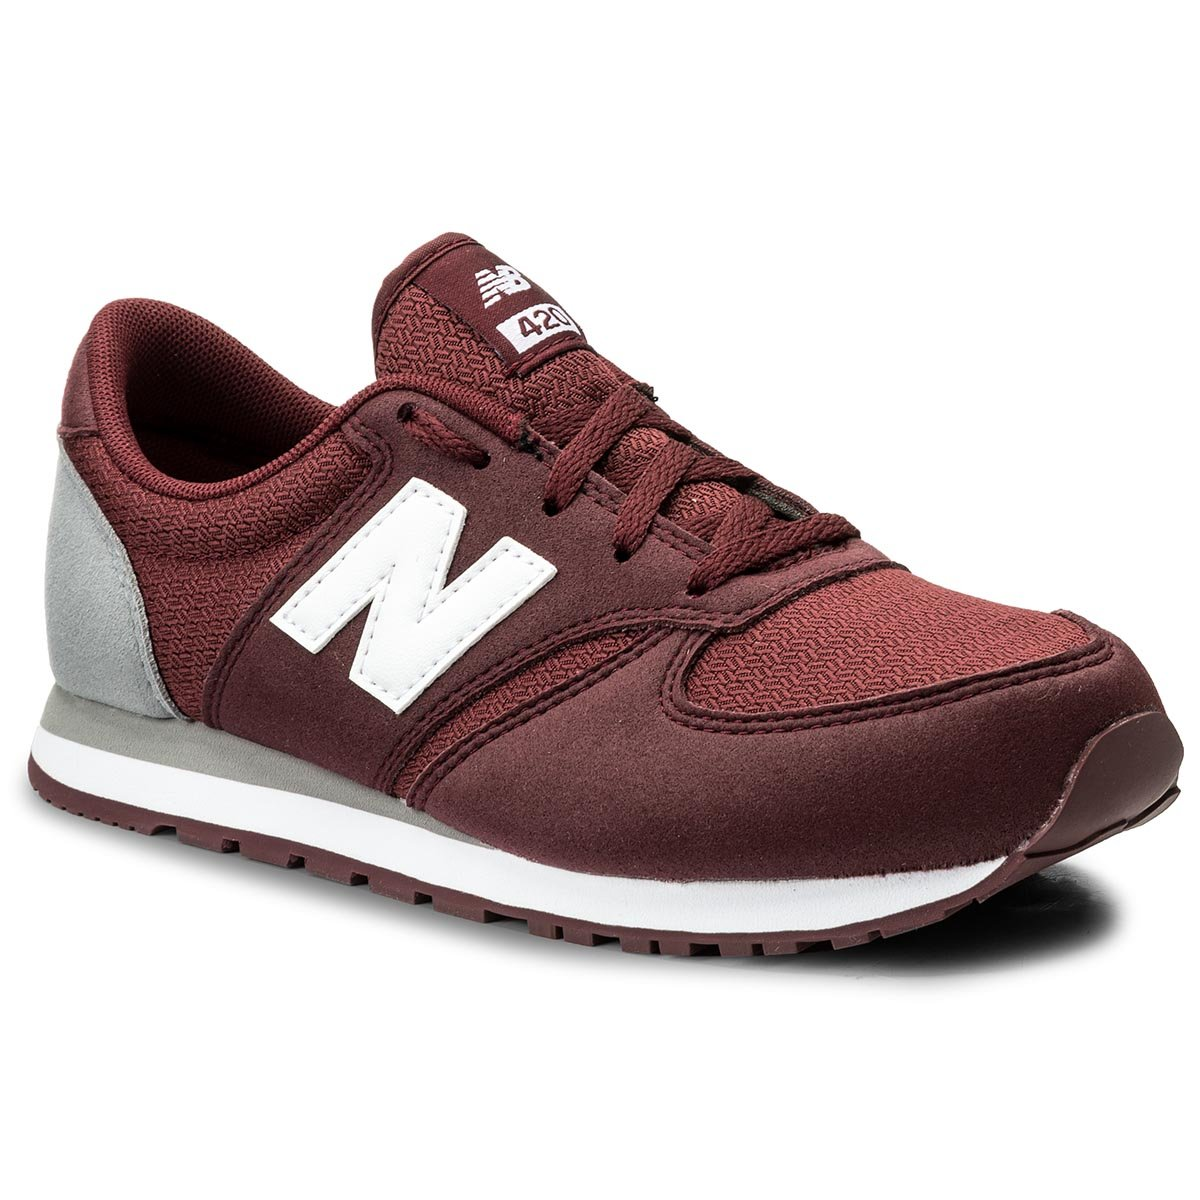 Sneakersy NEW BALANCE - KL420BUY Bordowy